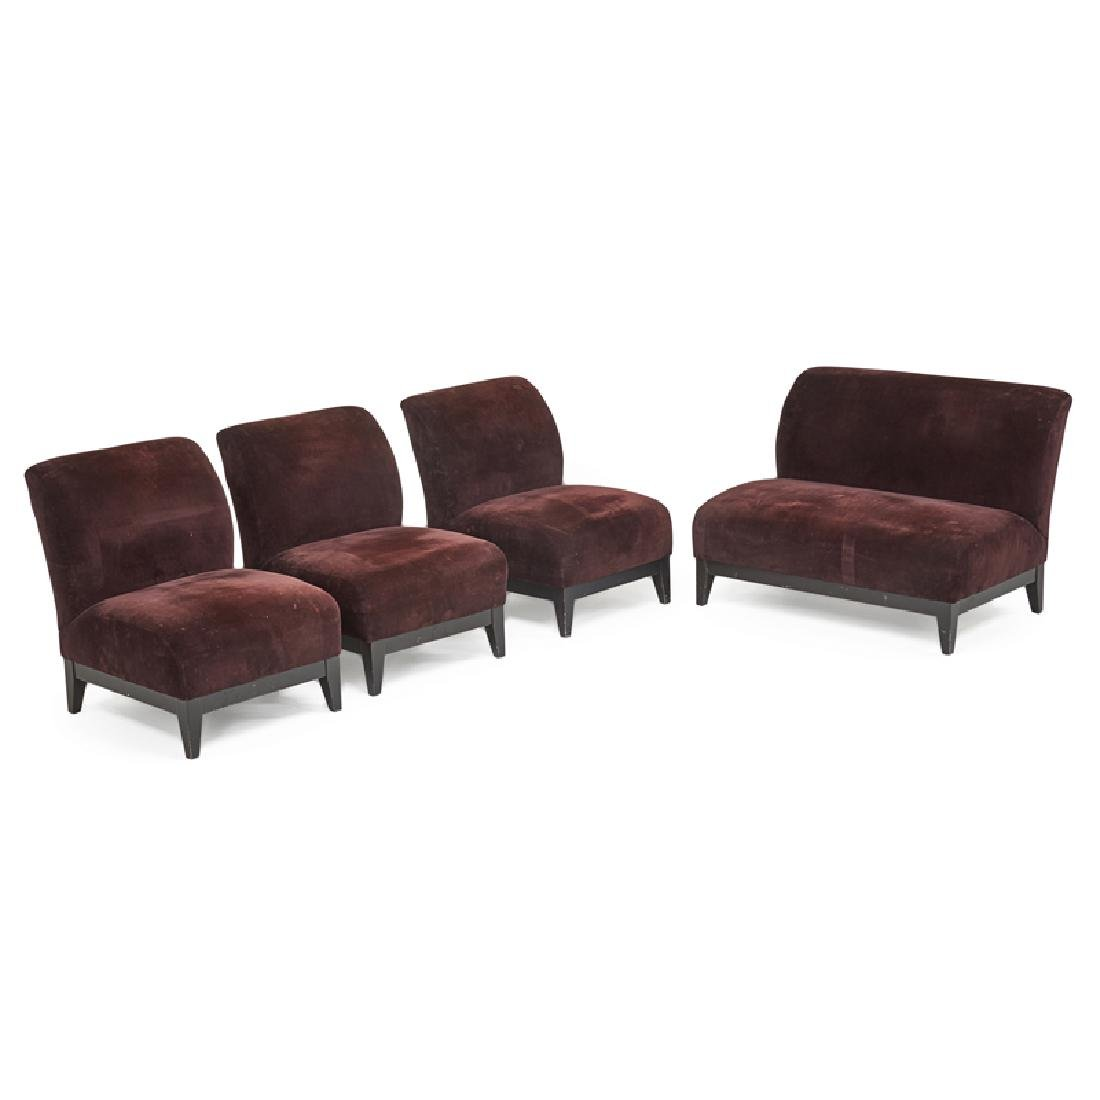 MITCHELL GOLD SEATING GROUP